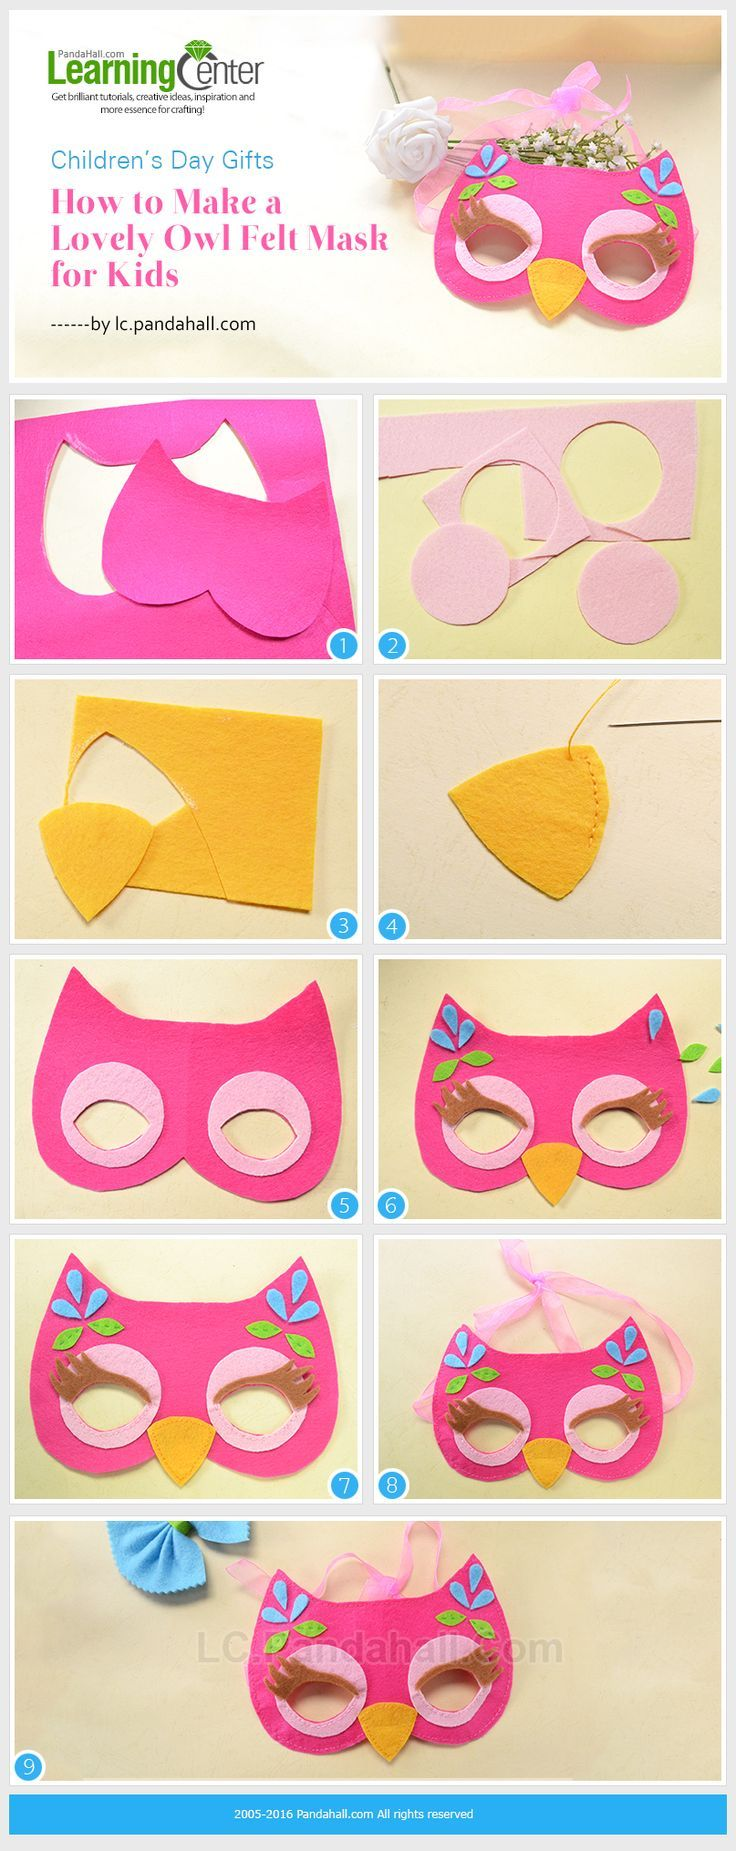 Children's Day Gifts-How to Make a Lovely Owl Felt Mask for Kids from LC.Pandahall.com